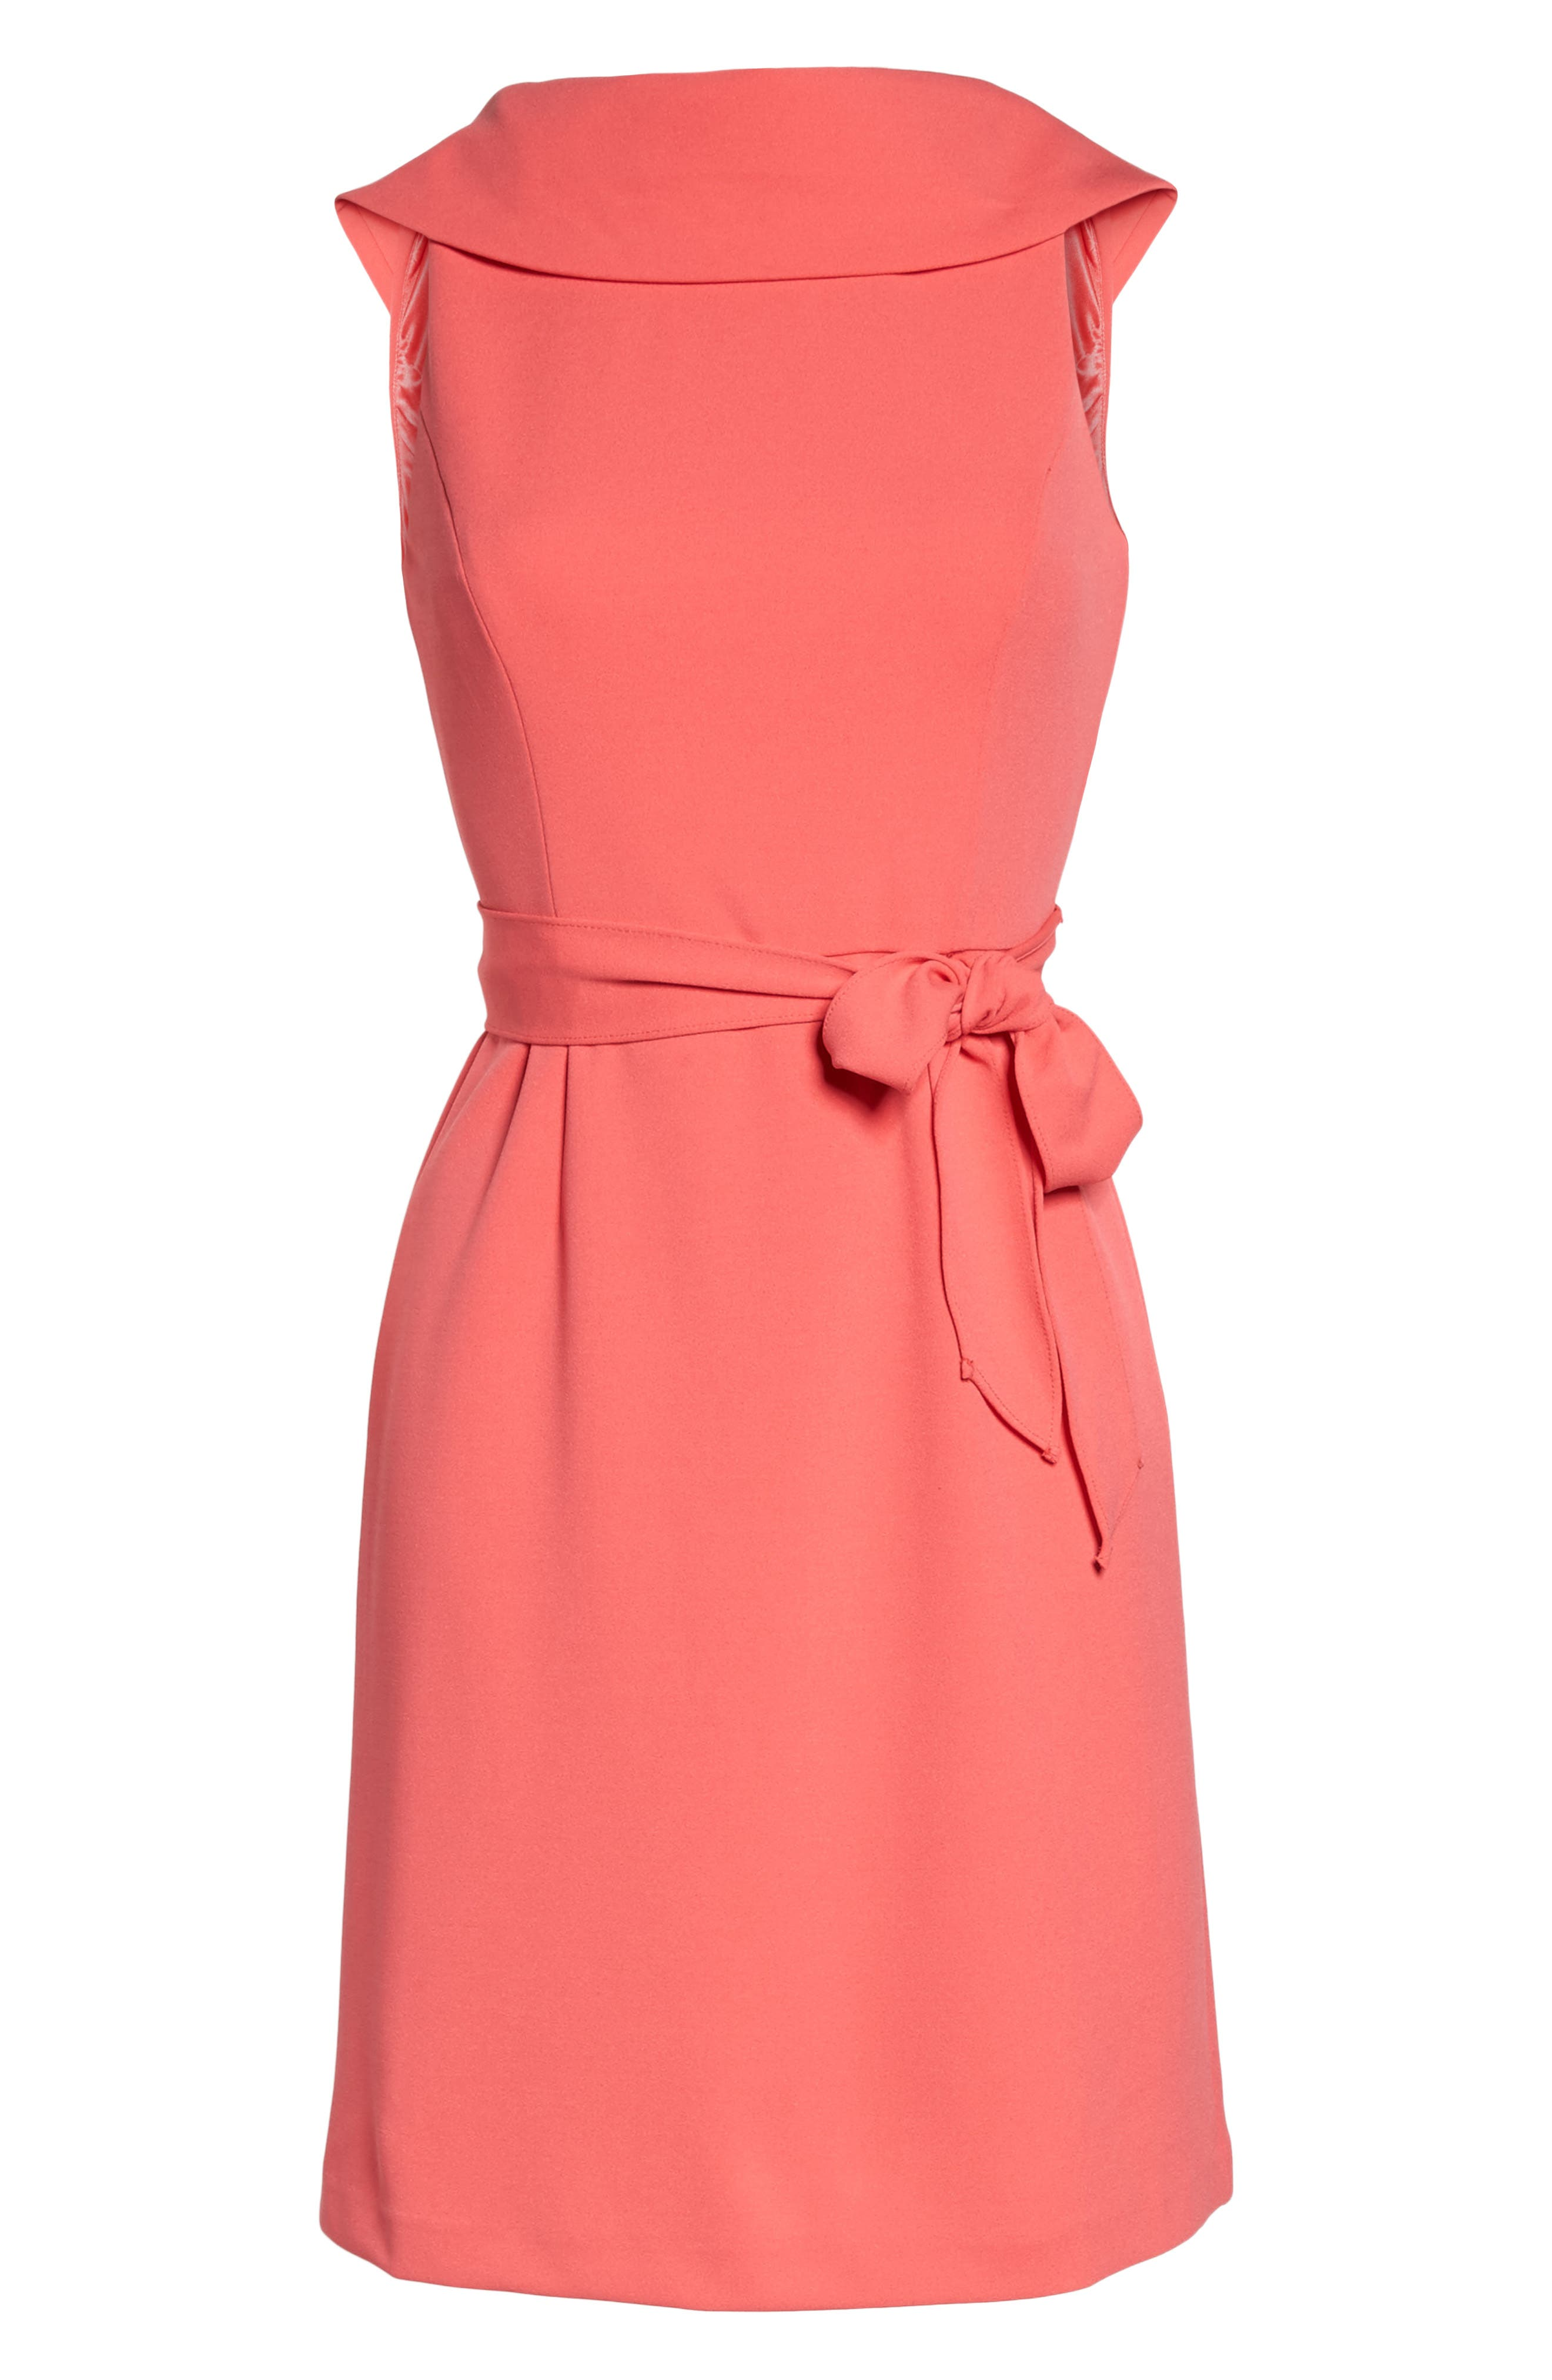 ADRIANNA PAPELL,                             Roll Neck Crepe Dress,                             Alternate thumbnail 6, color,                             650